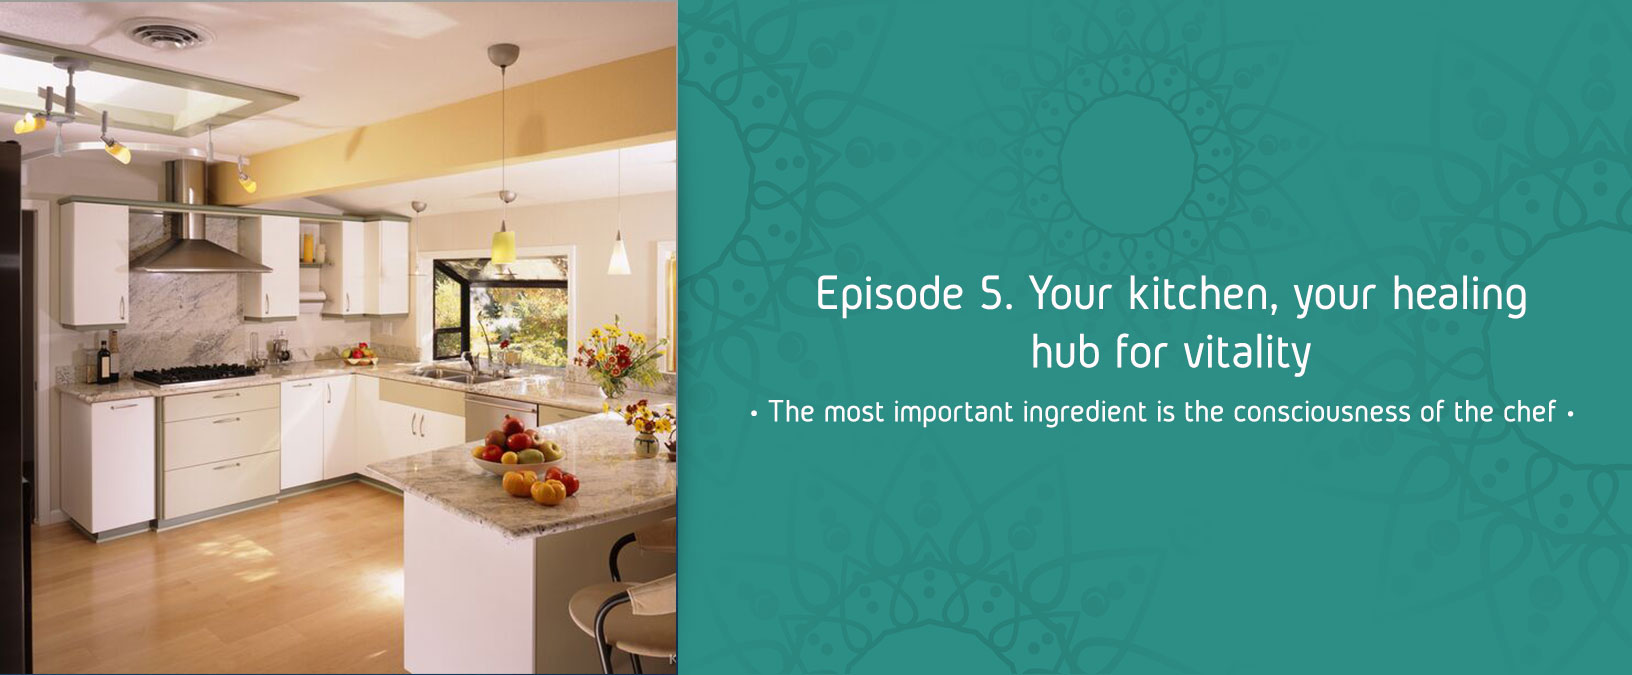 Episode 5. Your kitchen, your healing hub for vitality